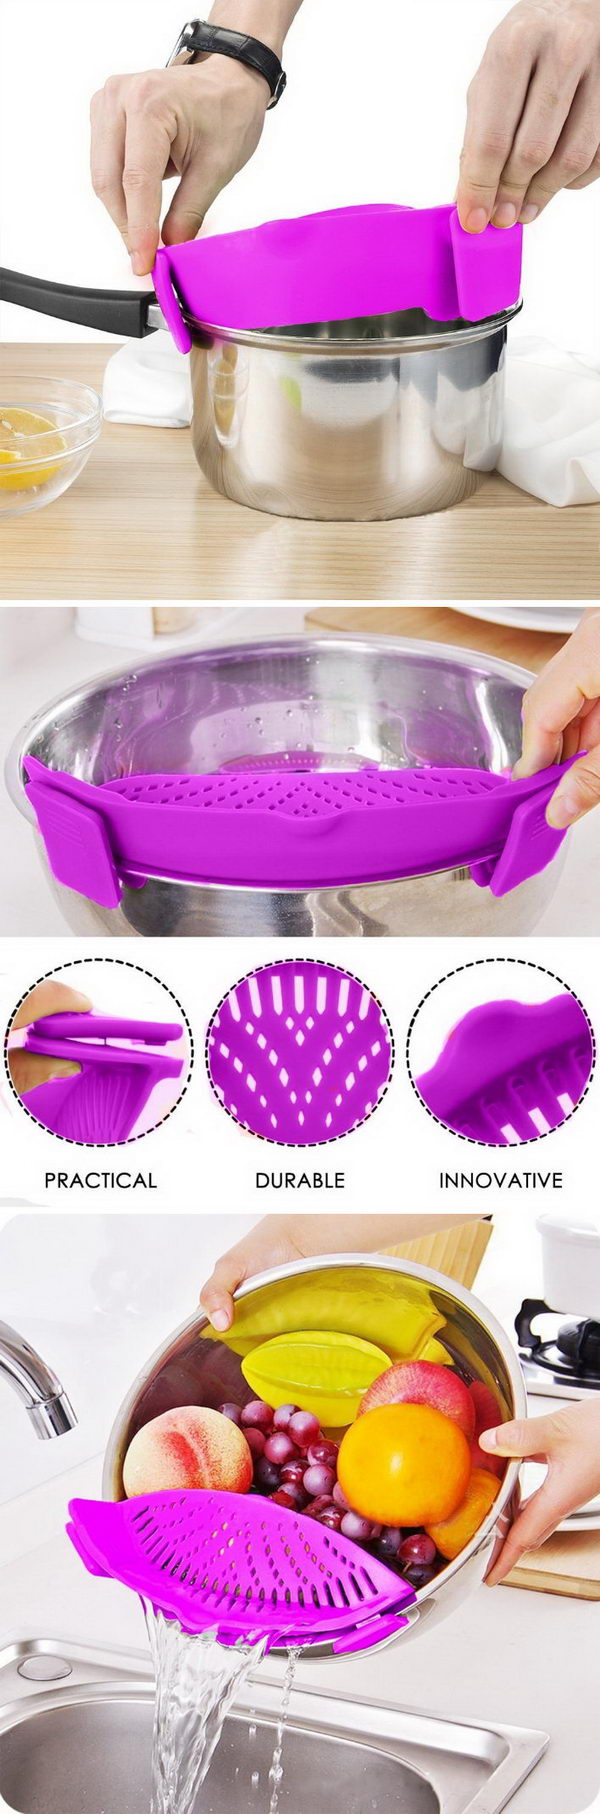 This Genius Silicone Strainer That Fits Basically Every Sized Pot You Have.